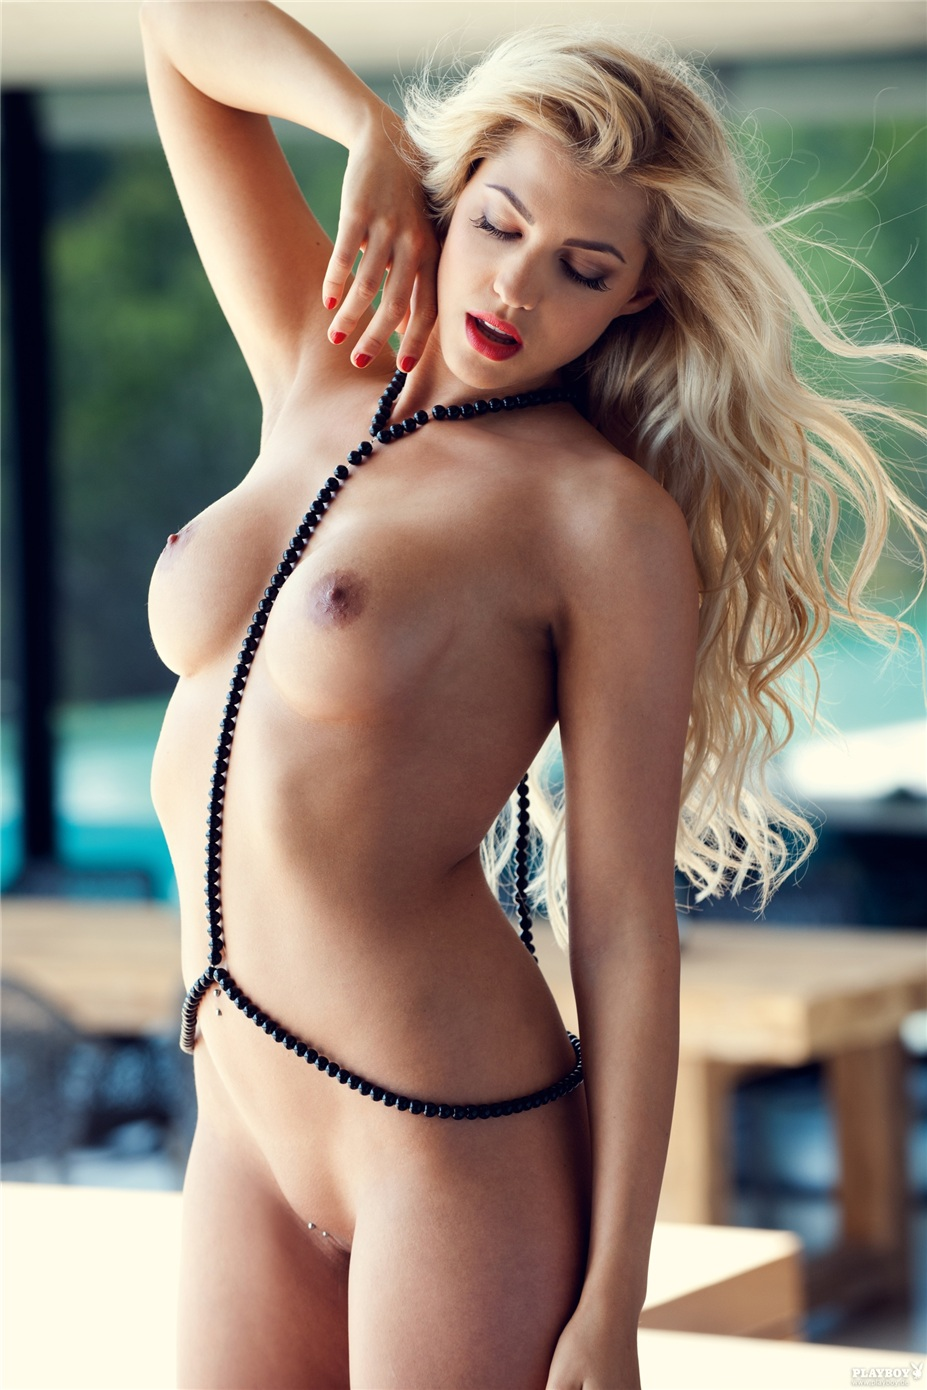 Девушка месяца Сара Новак / Sarah Nowak - Playboy Germany august 2014